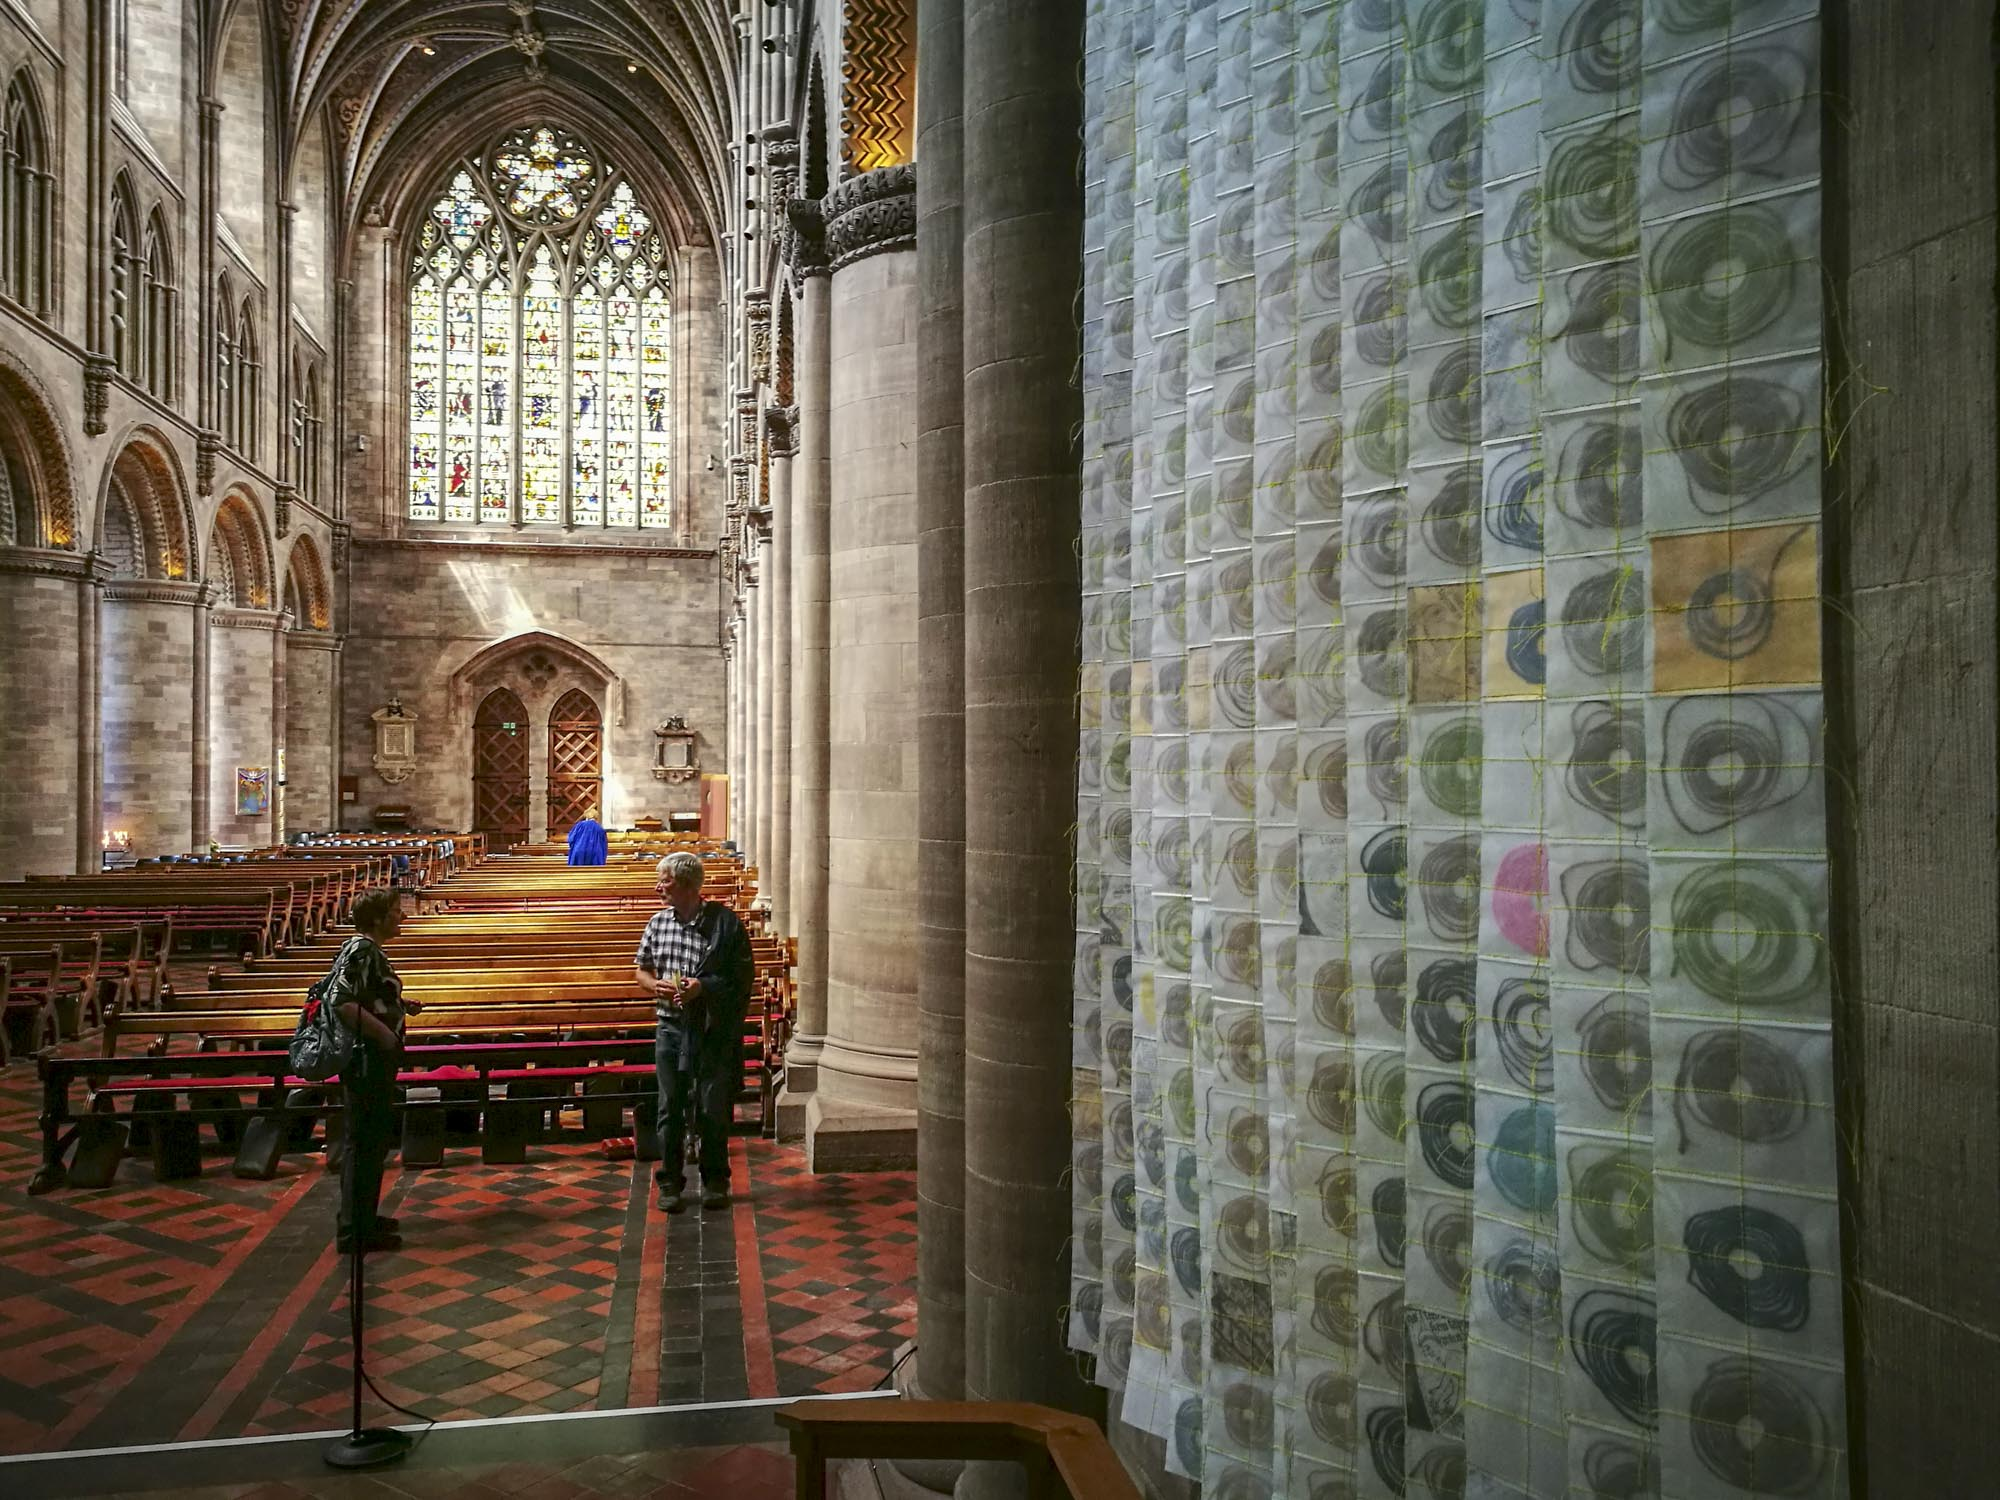 artwork 'Map of Mundi' by artist Michelle Rumney in the nave of Hereford Cathedral Re-Making Maps of the Mind: Medieval and Modern Journeys exhibition